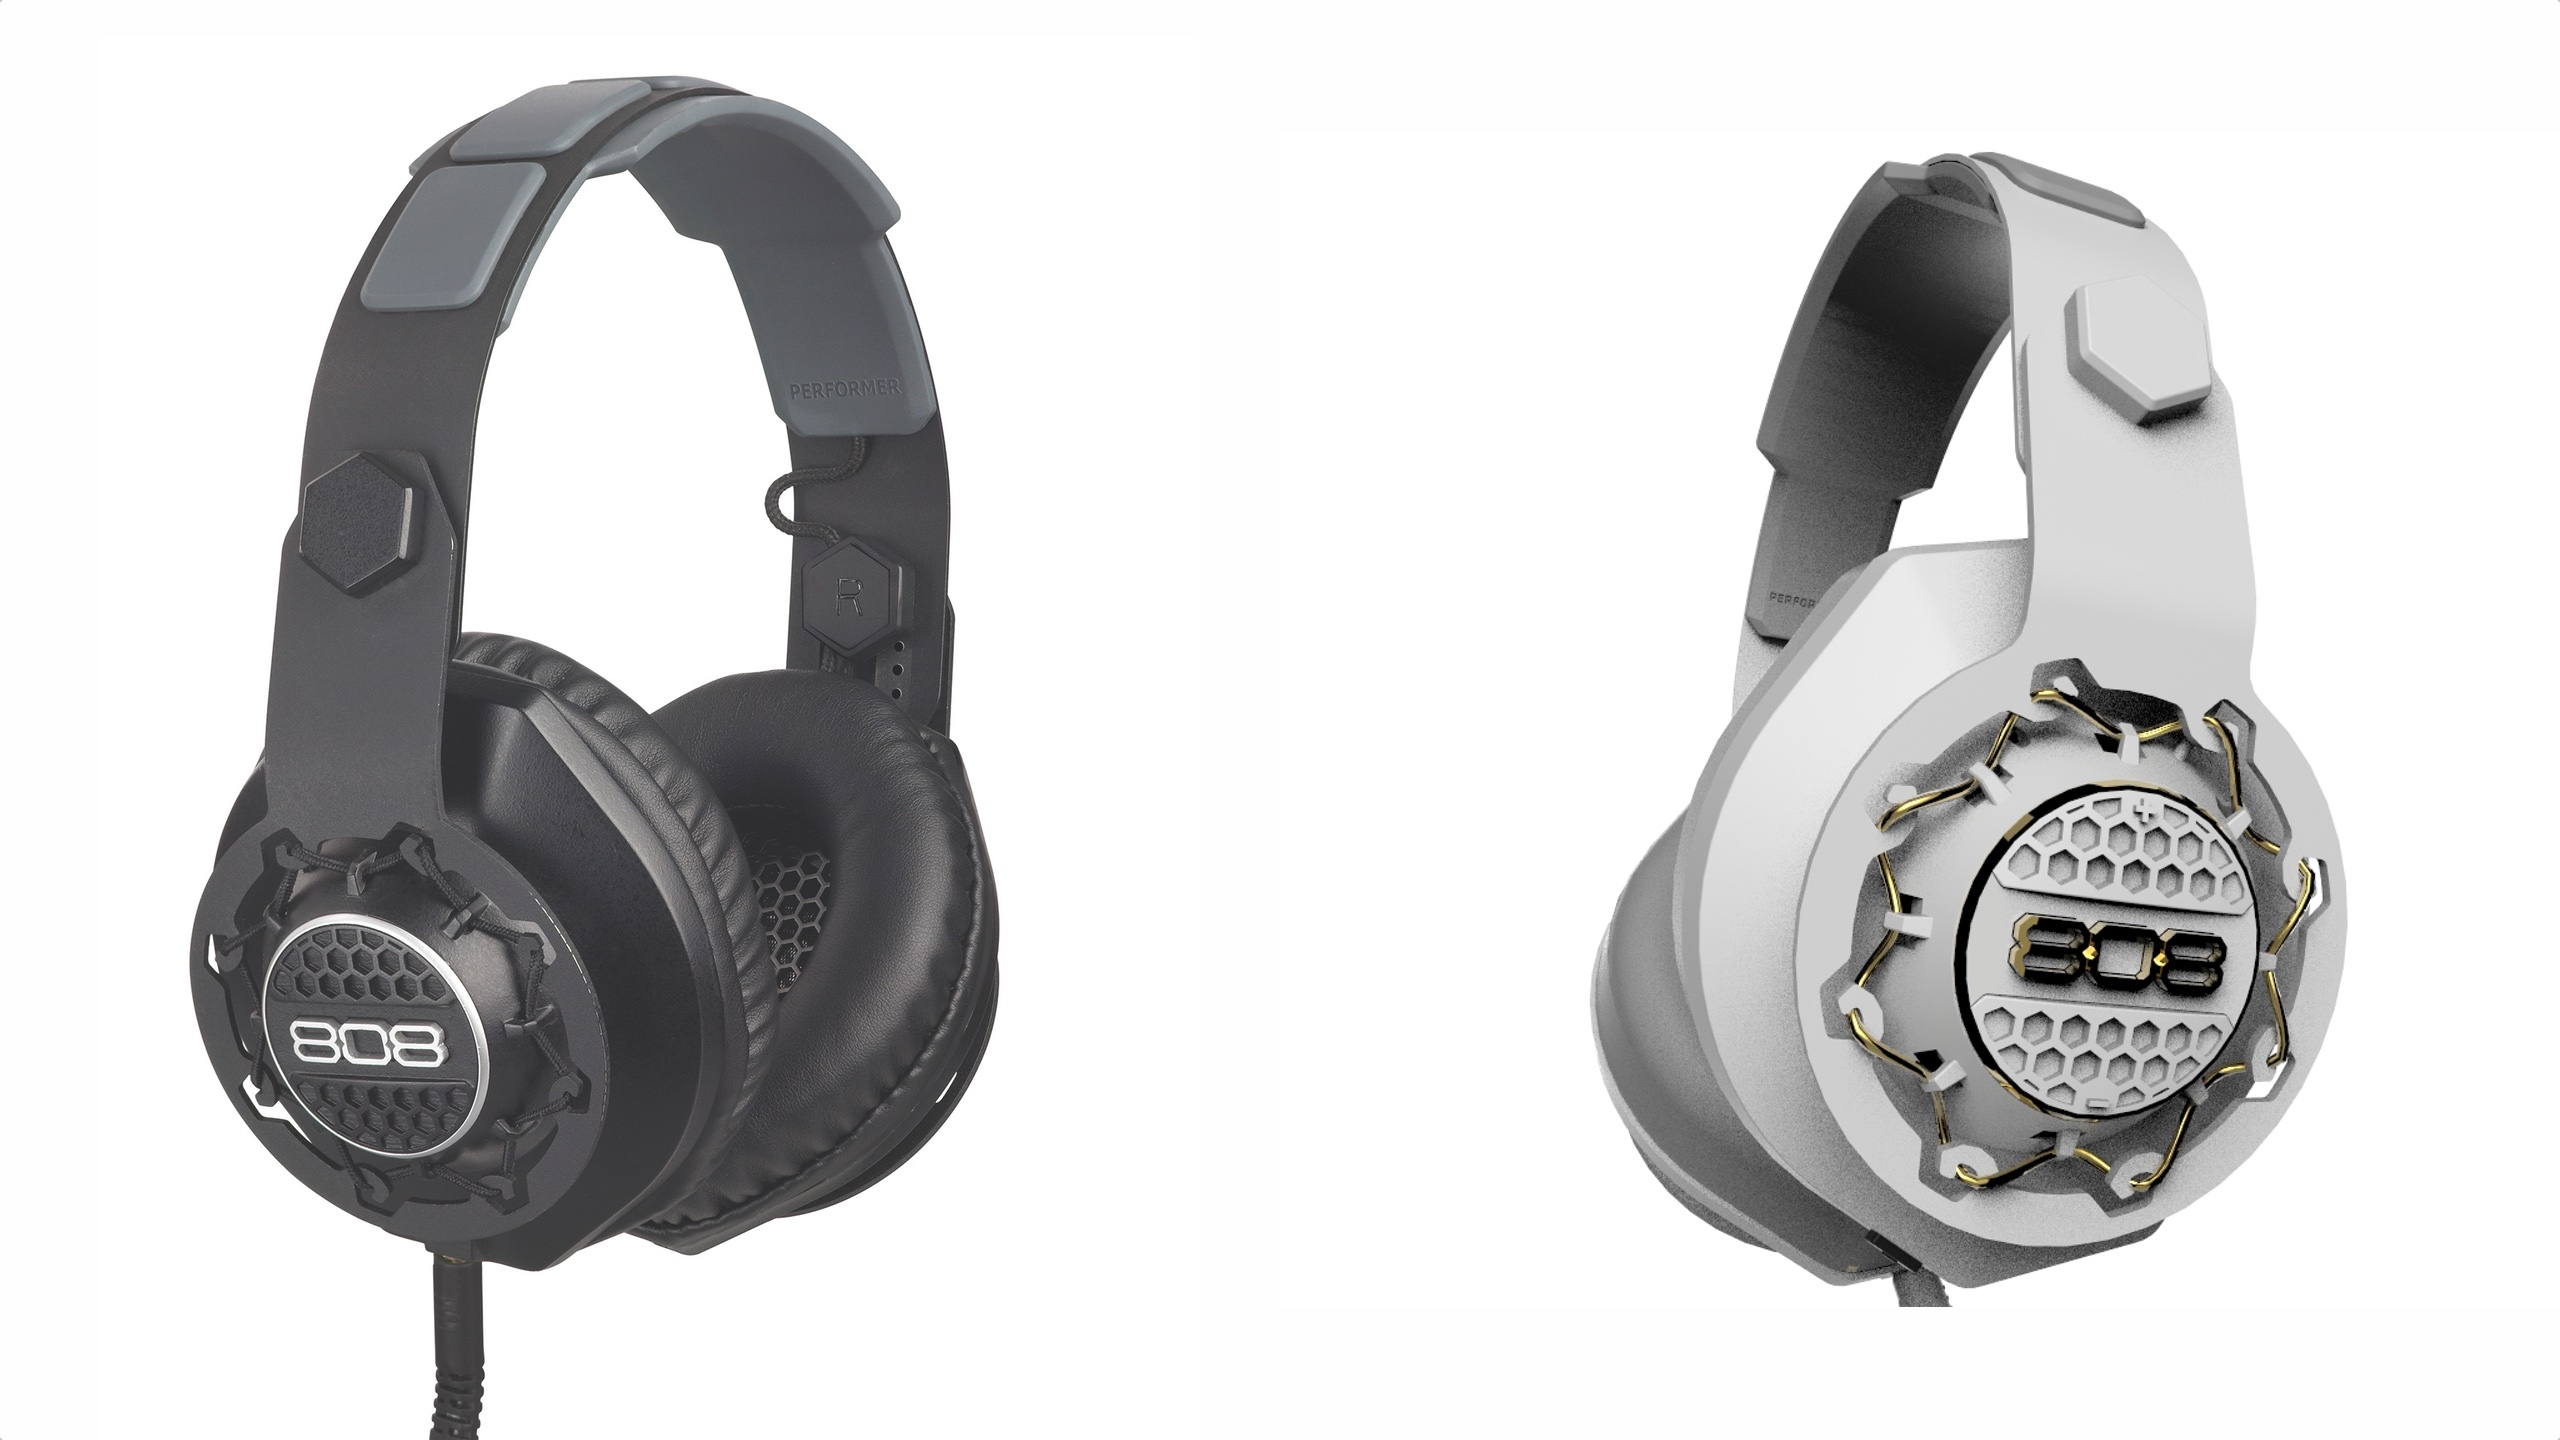 808-audio-performer-headphones